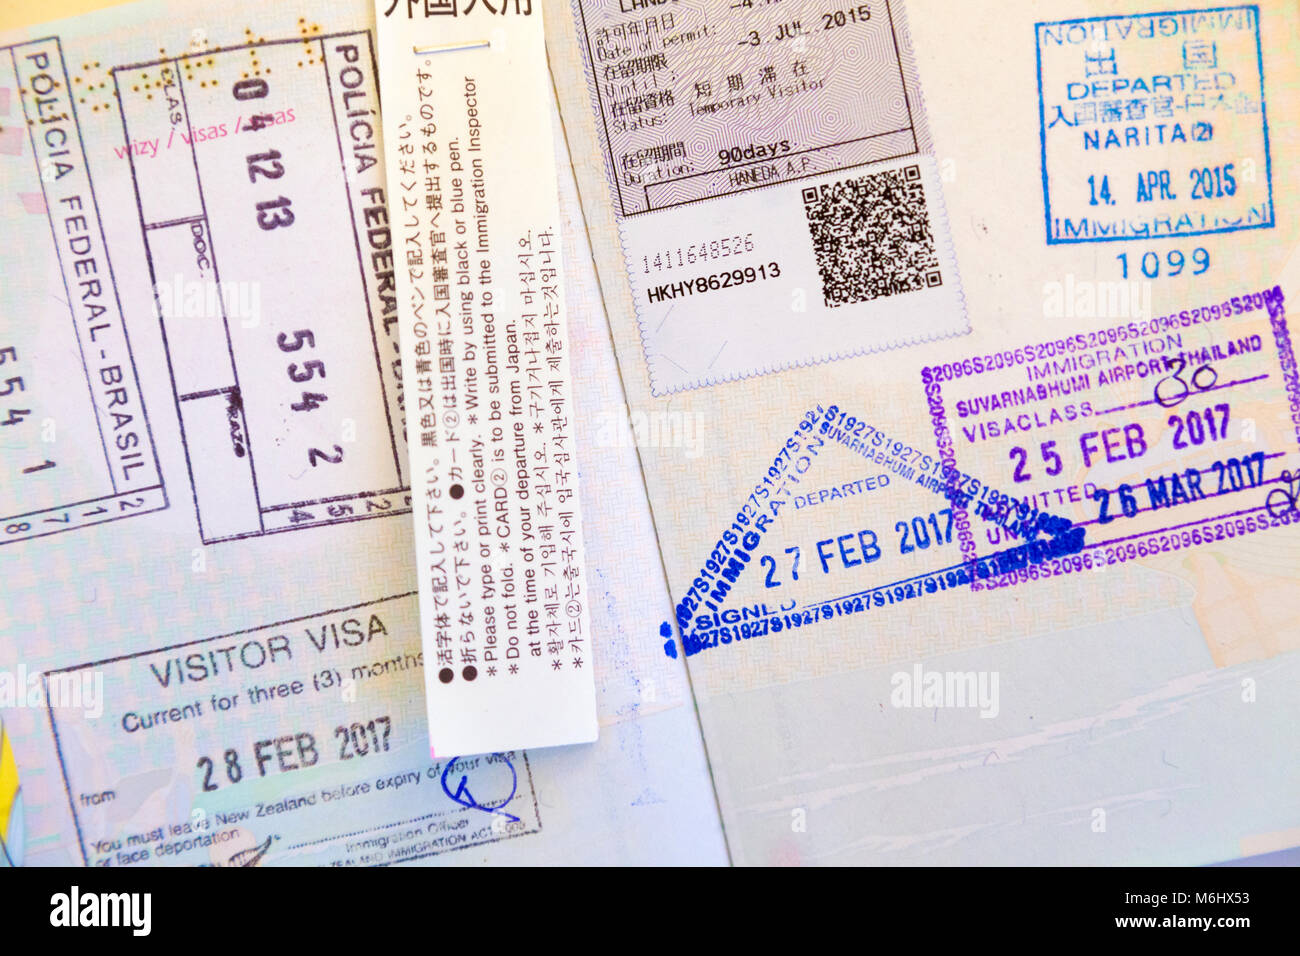 Page of passport stamps inside a passport - Stock Image